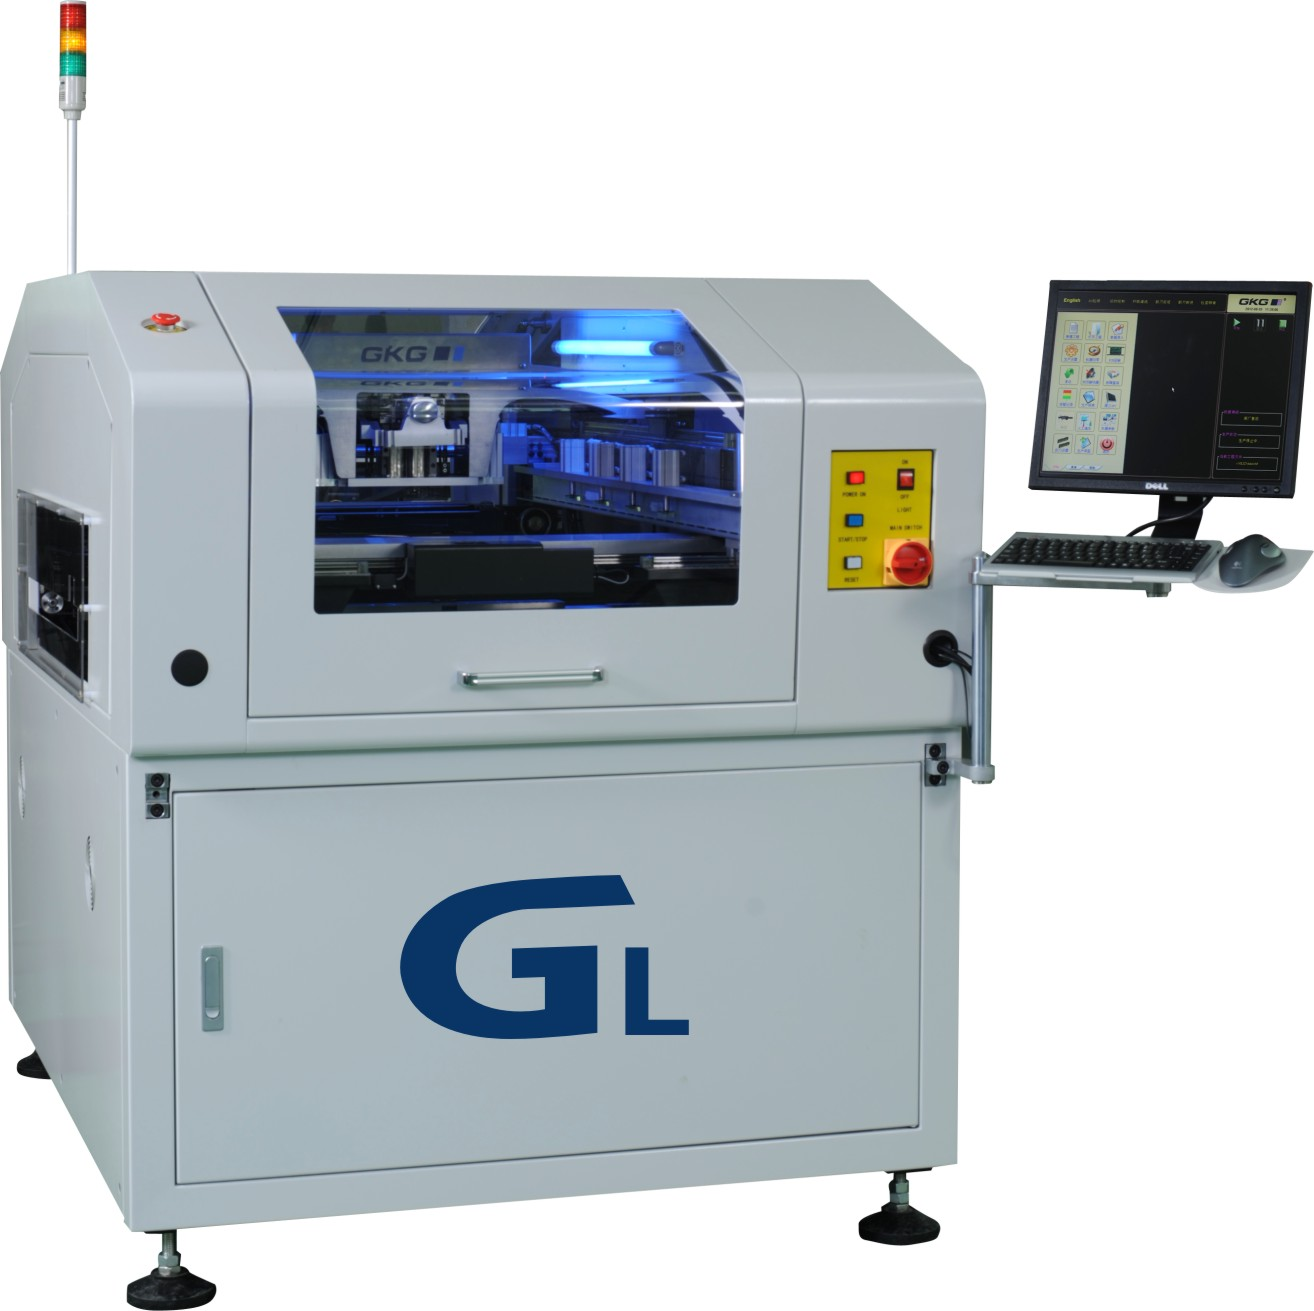 D Printer Exhibition Germany : Gkg asia announces a successful productronica exhibition